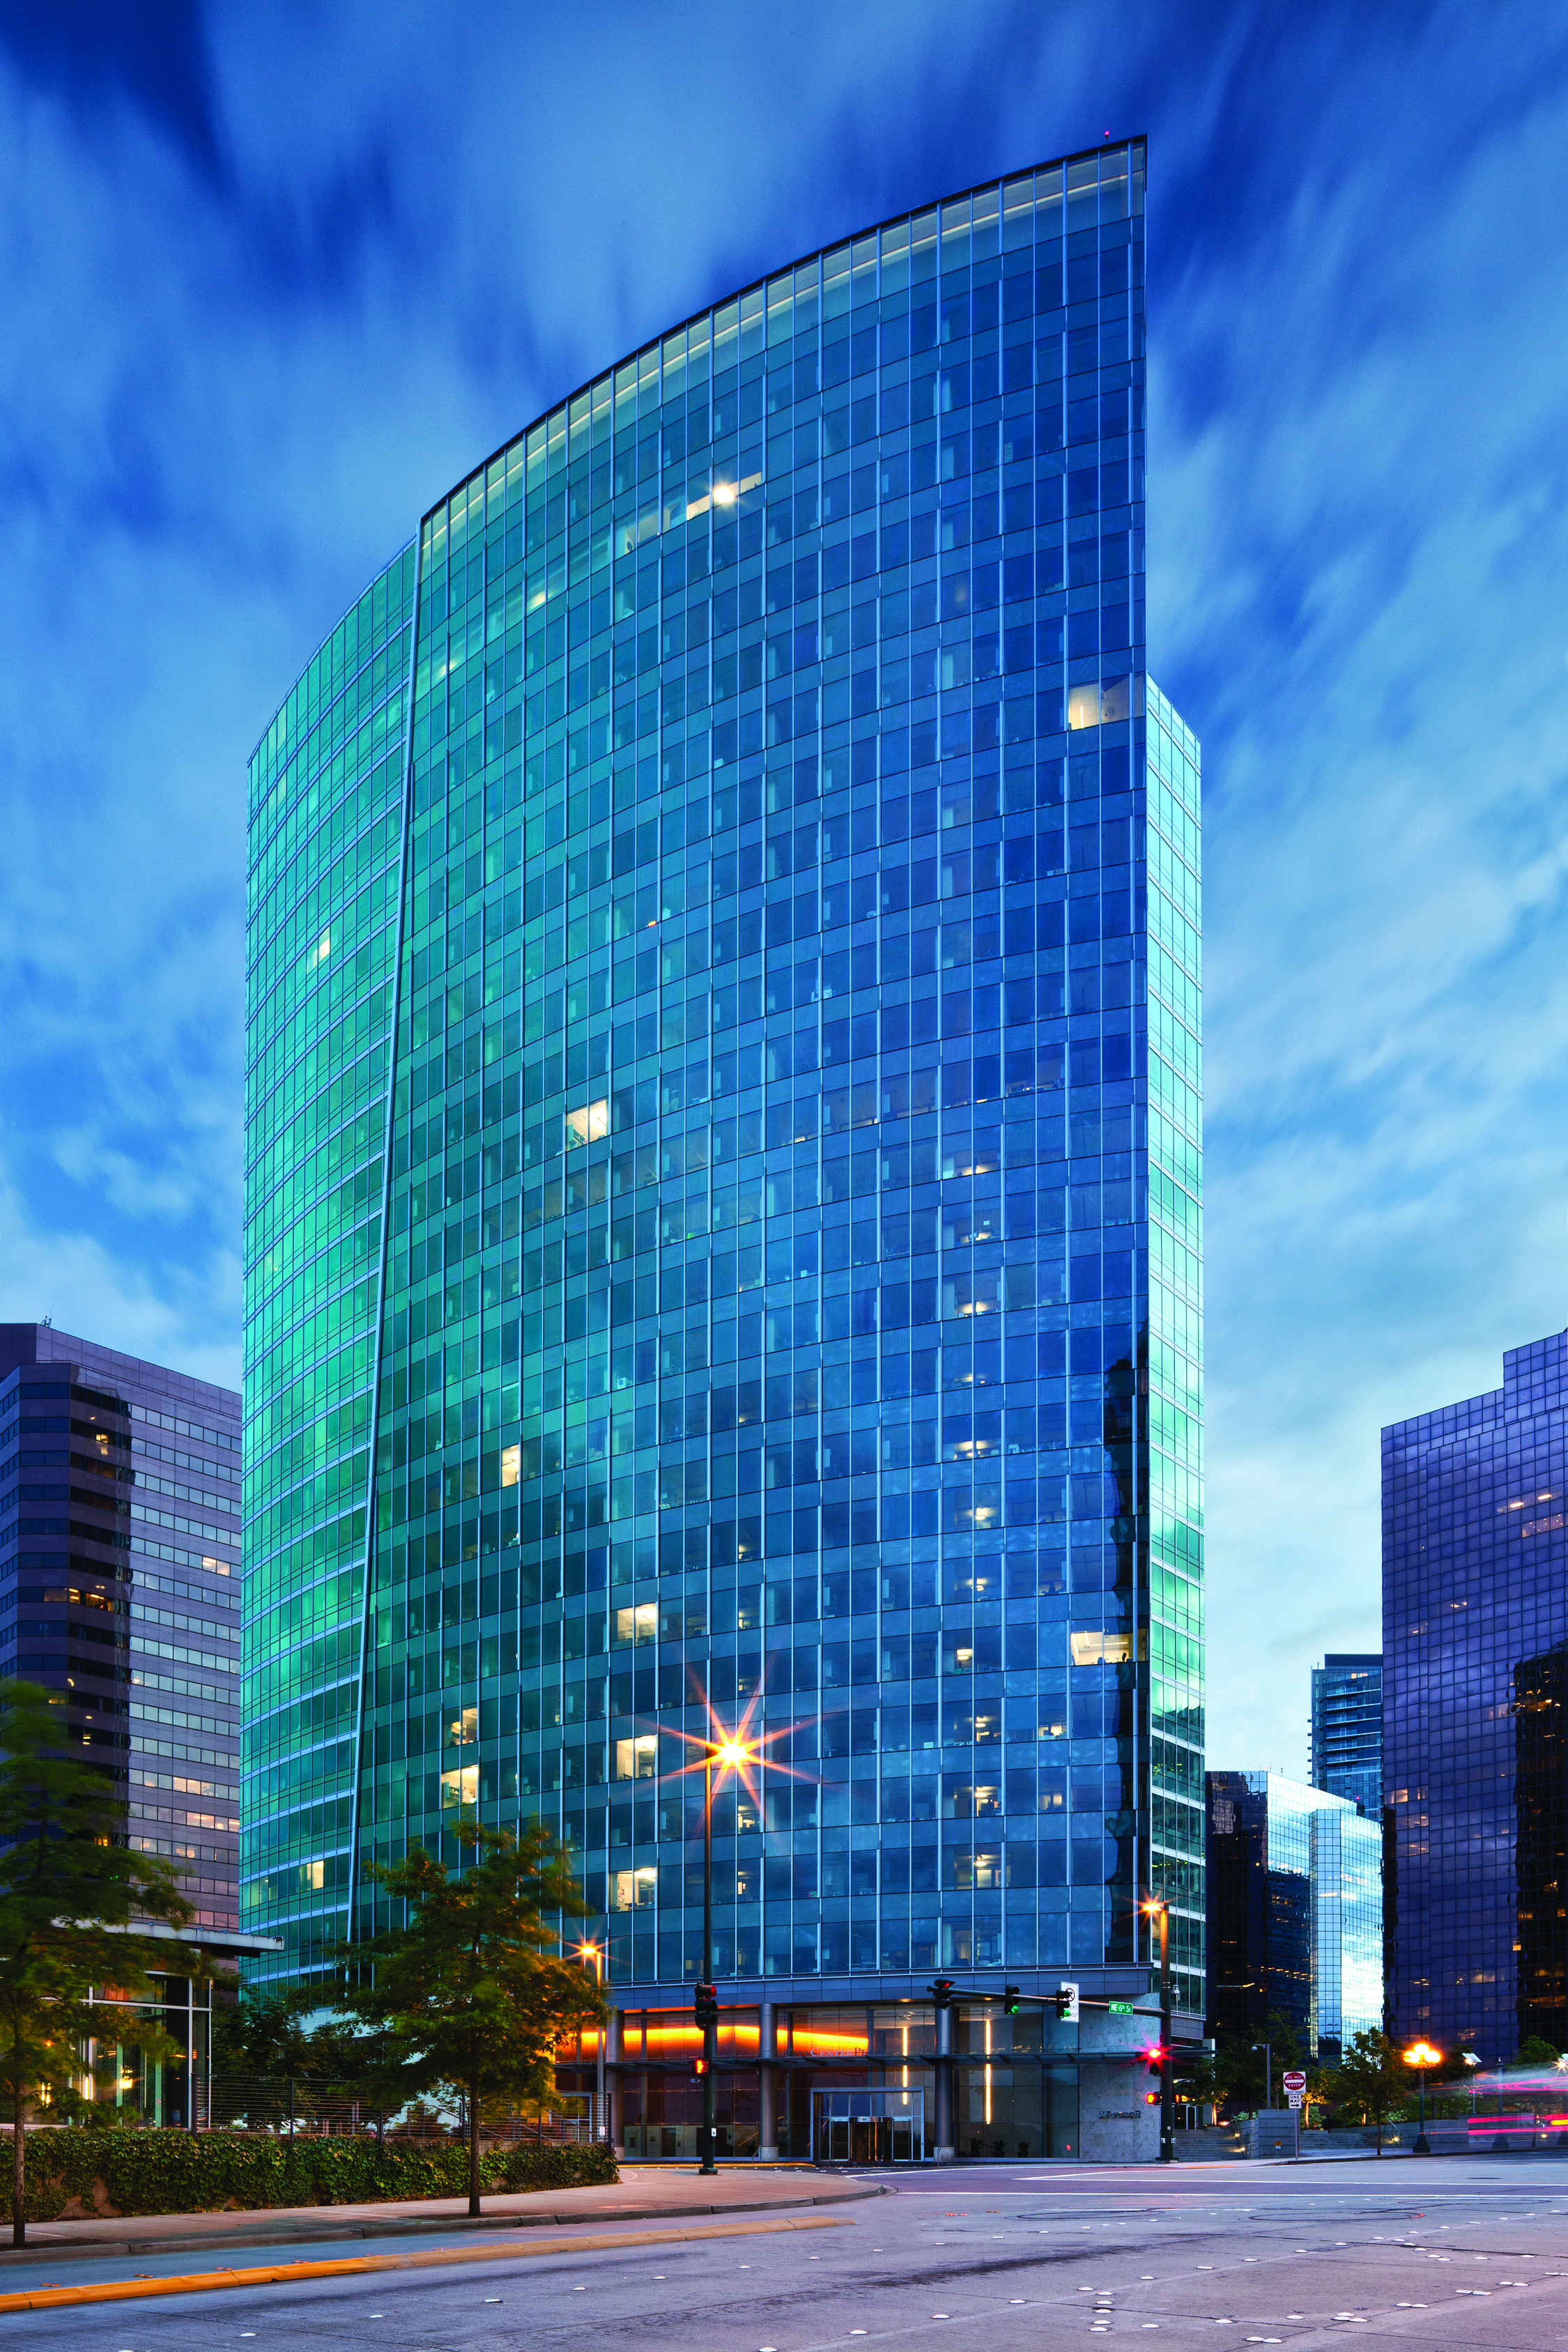 Bellevue City Center | Glazing contractor: Walters and Wolf | Architect: SRG Partnership | Glass: PPG SolarBan 70